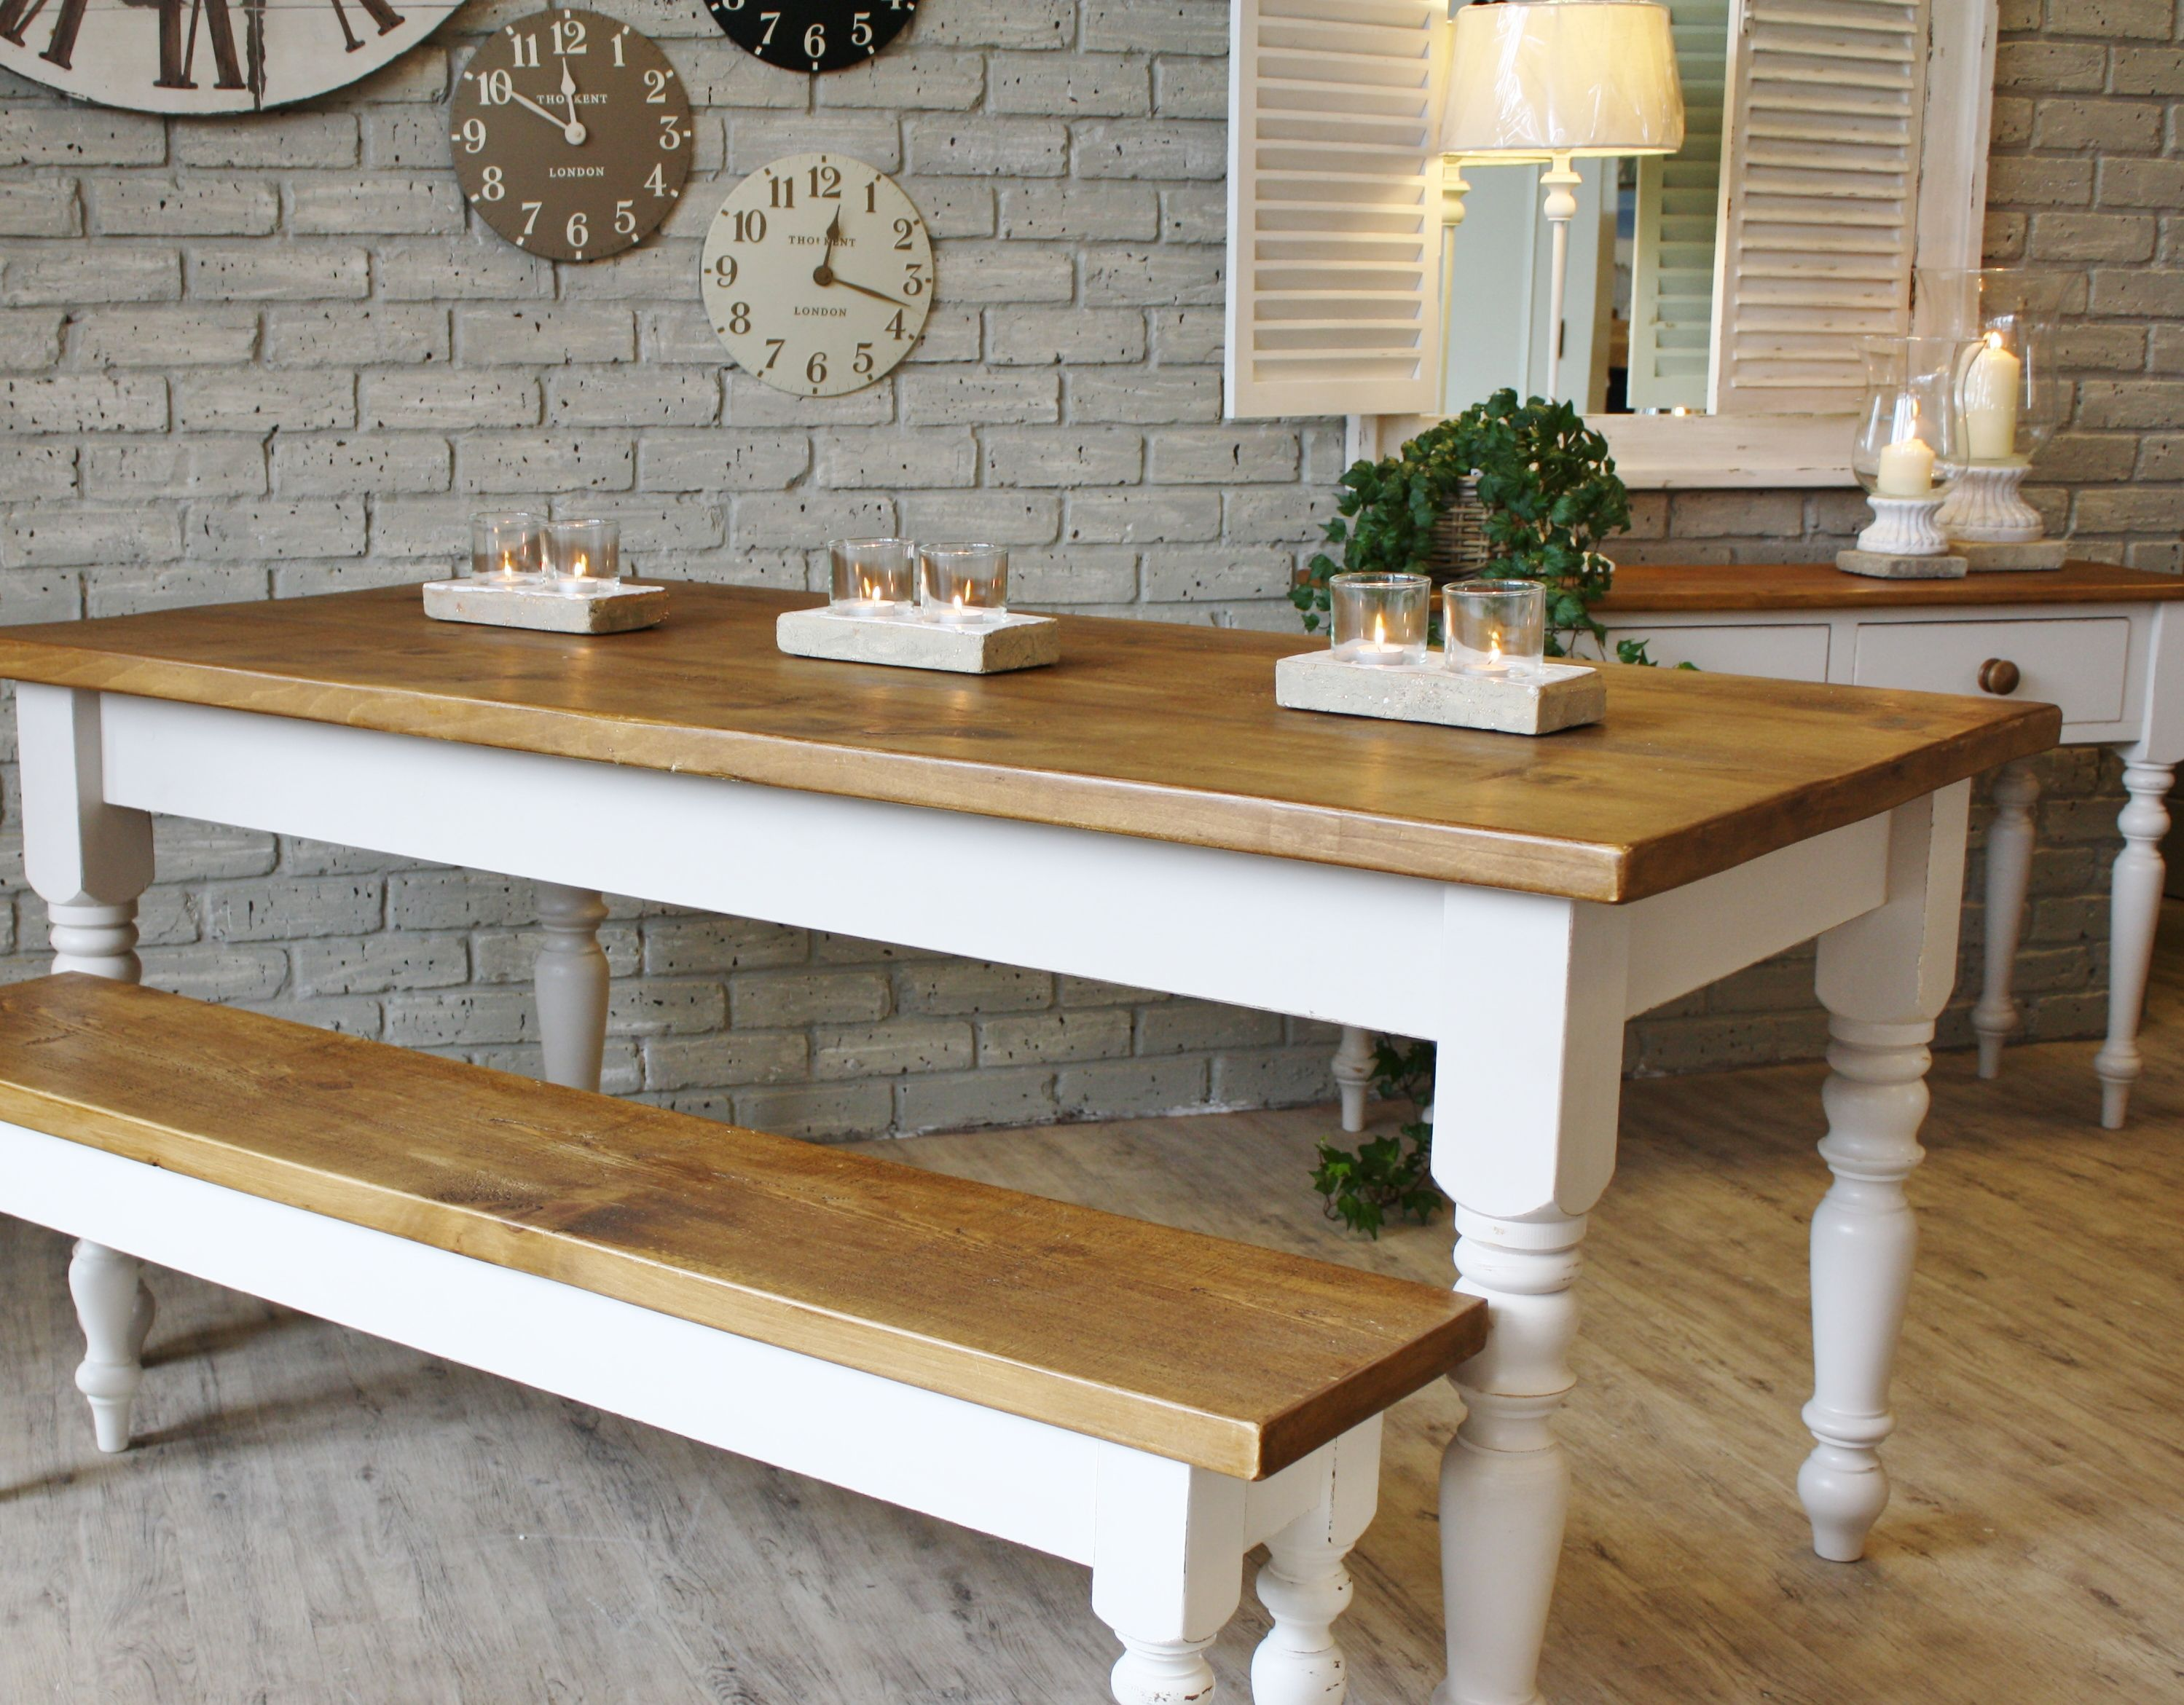 Wooden Kitchen Furniture White And Cream Farmhouse White Cream Farmhouse Wooden Kitchen